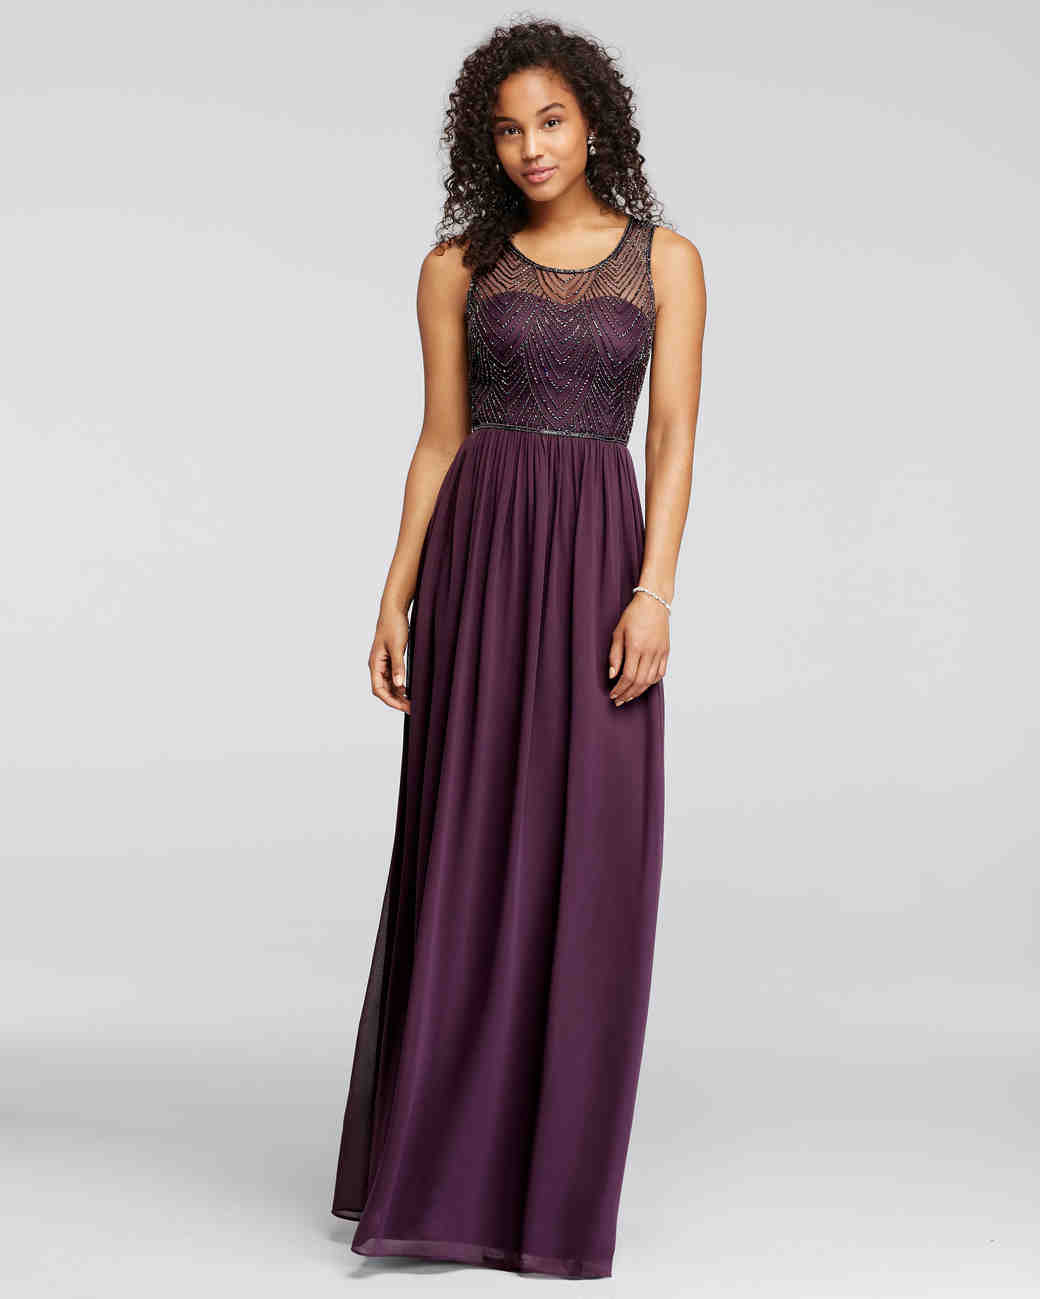 Purple Bridesmaids Dresses | Purple Bridesmaid Dresses Martha Stewart Weddings